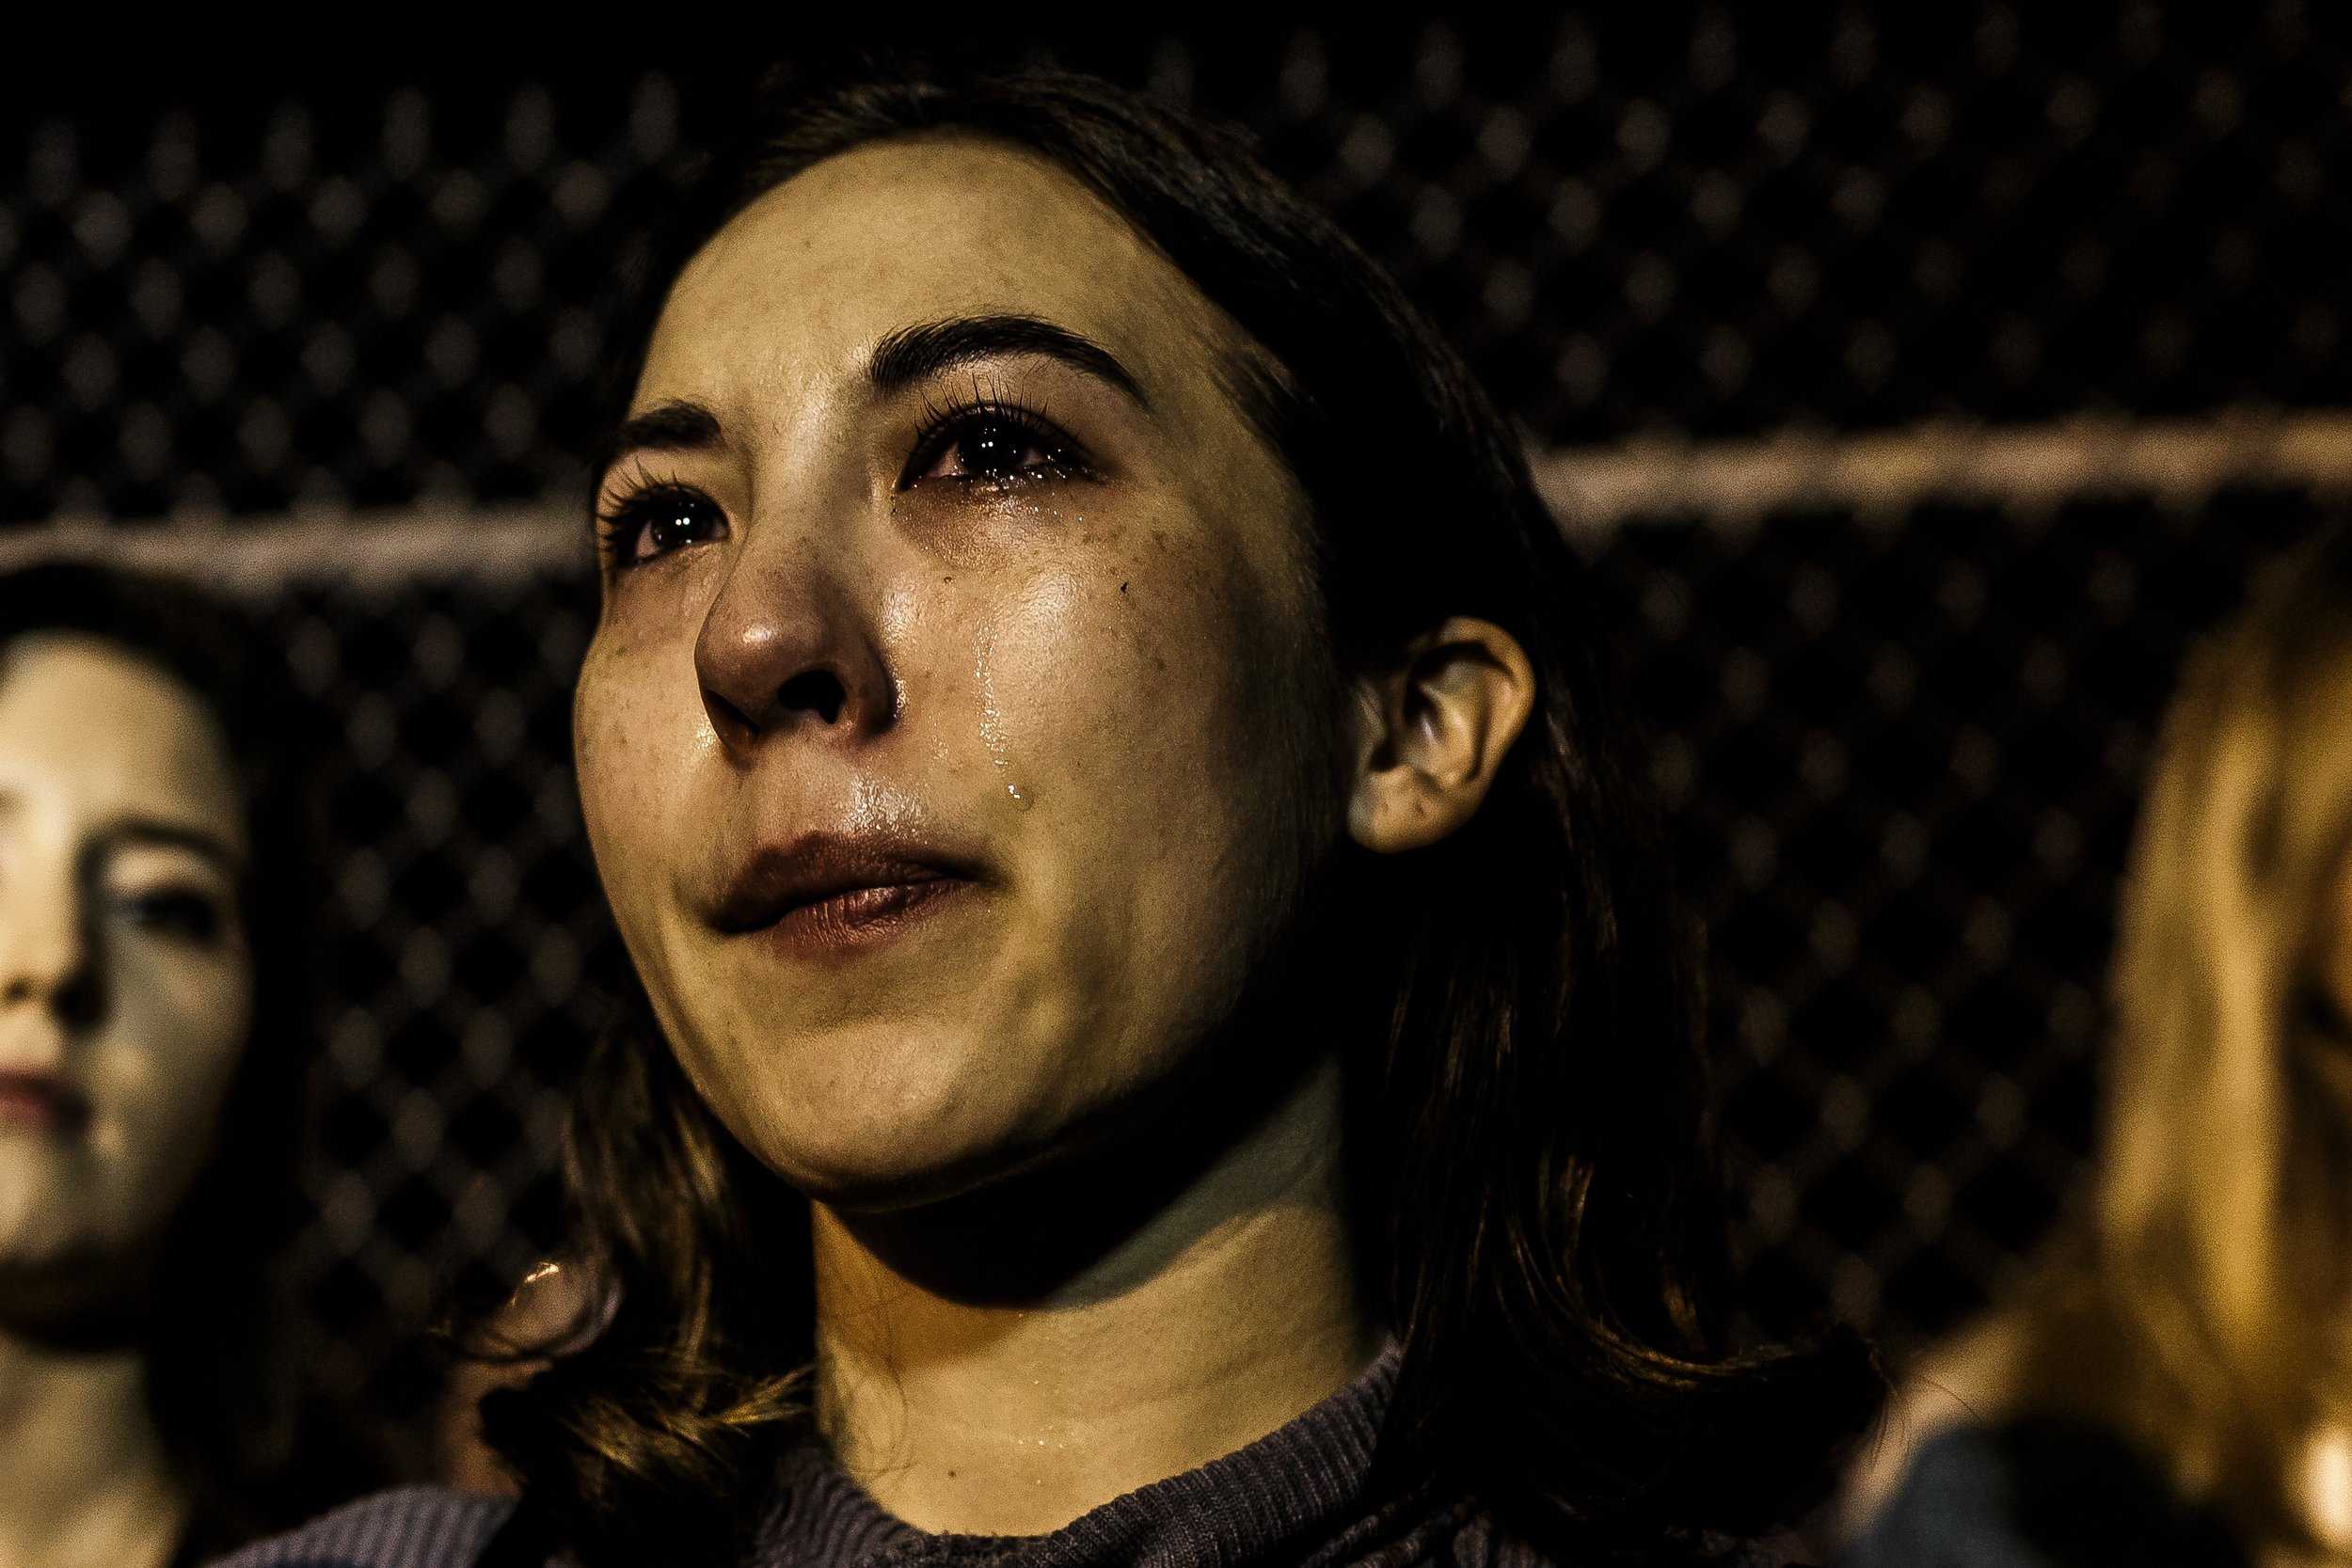 Christina Sewell, a senior campaigner for PETA, cries silently as the trucks containing pigs destined for slaughter drive slowly in through the gates of Farmer John, a slaughterhouse in Vernon, CA on March 13 2017.